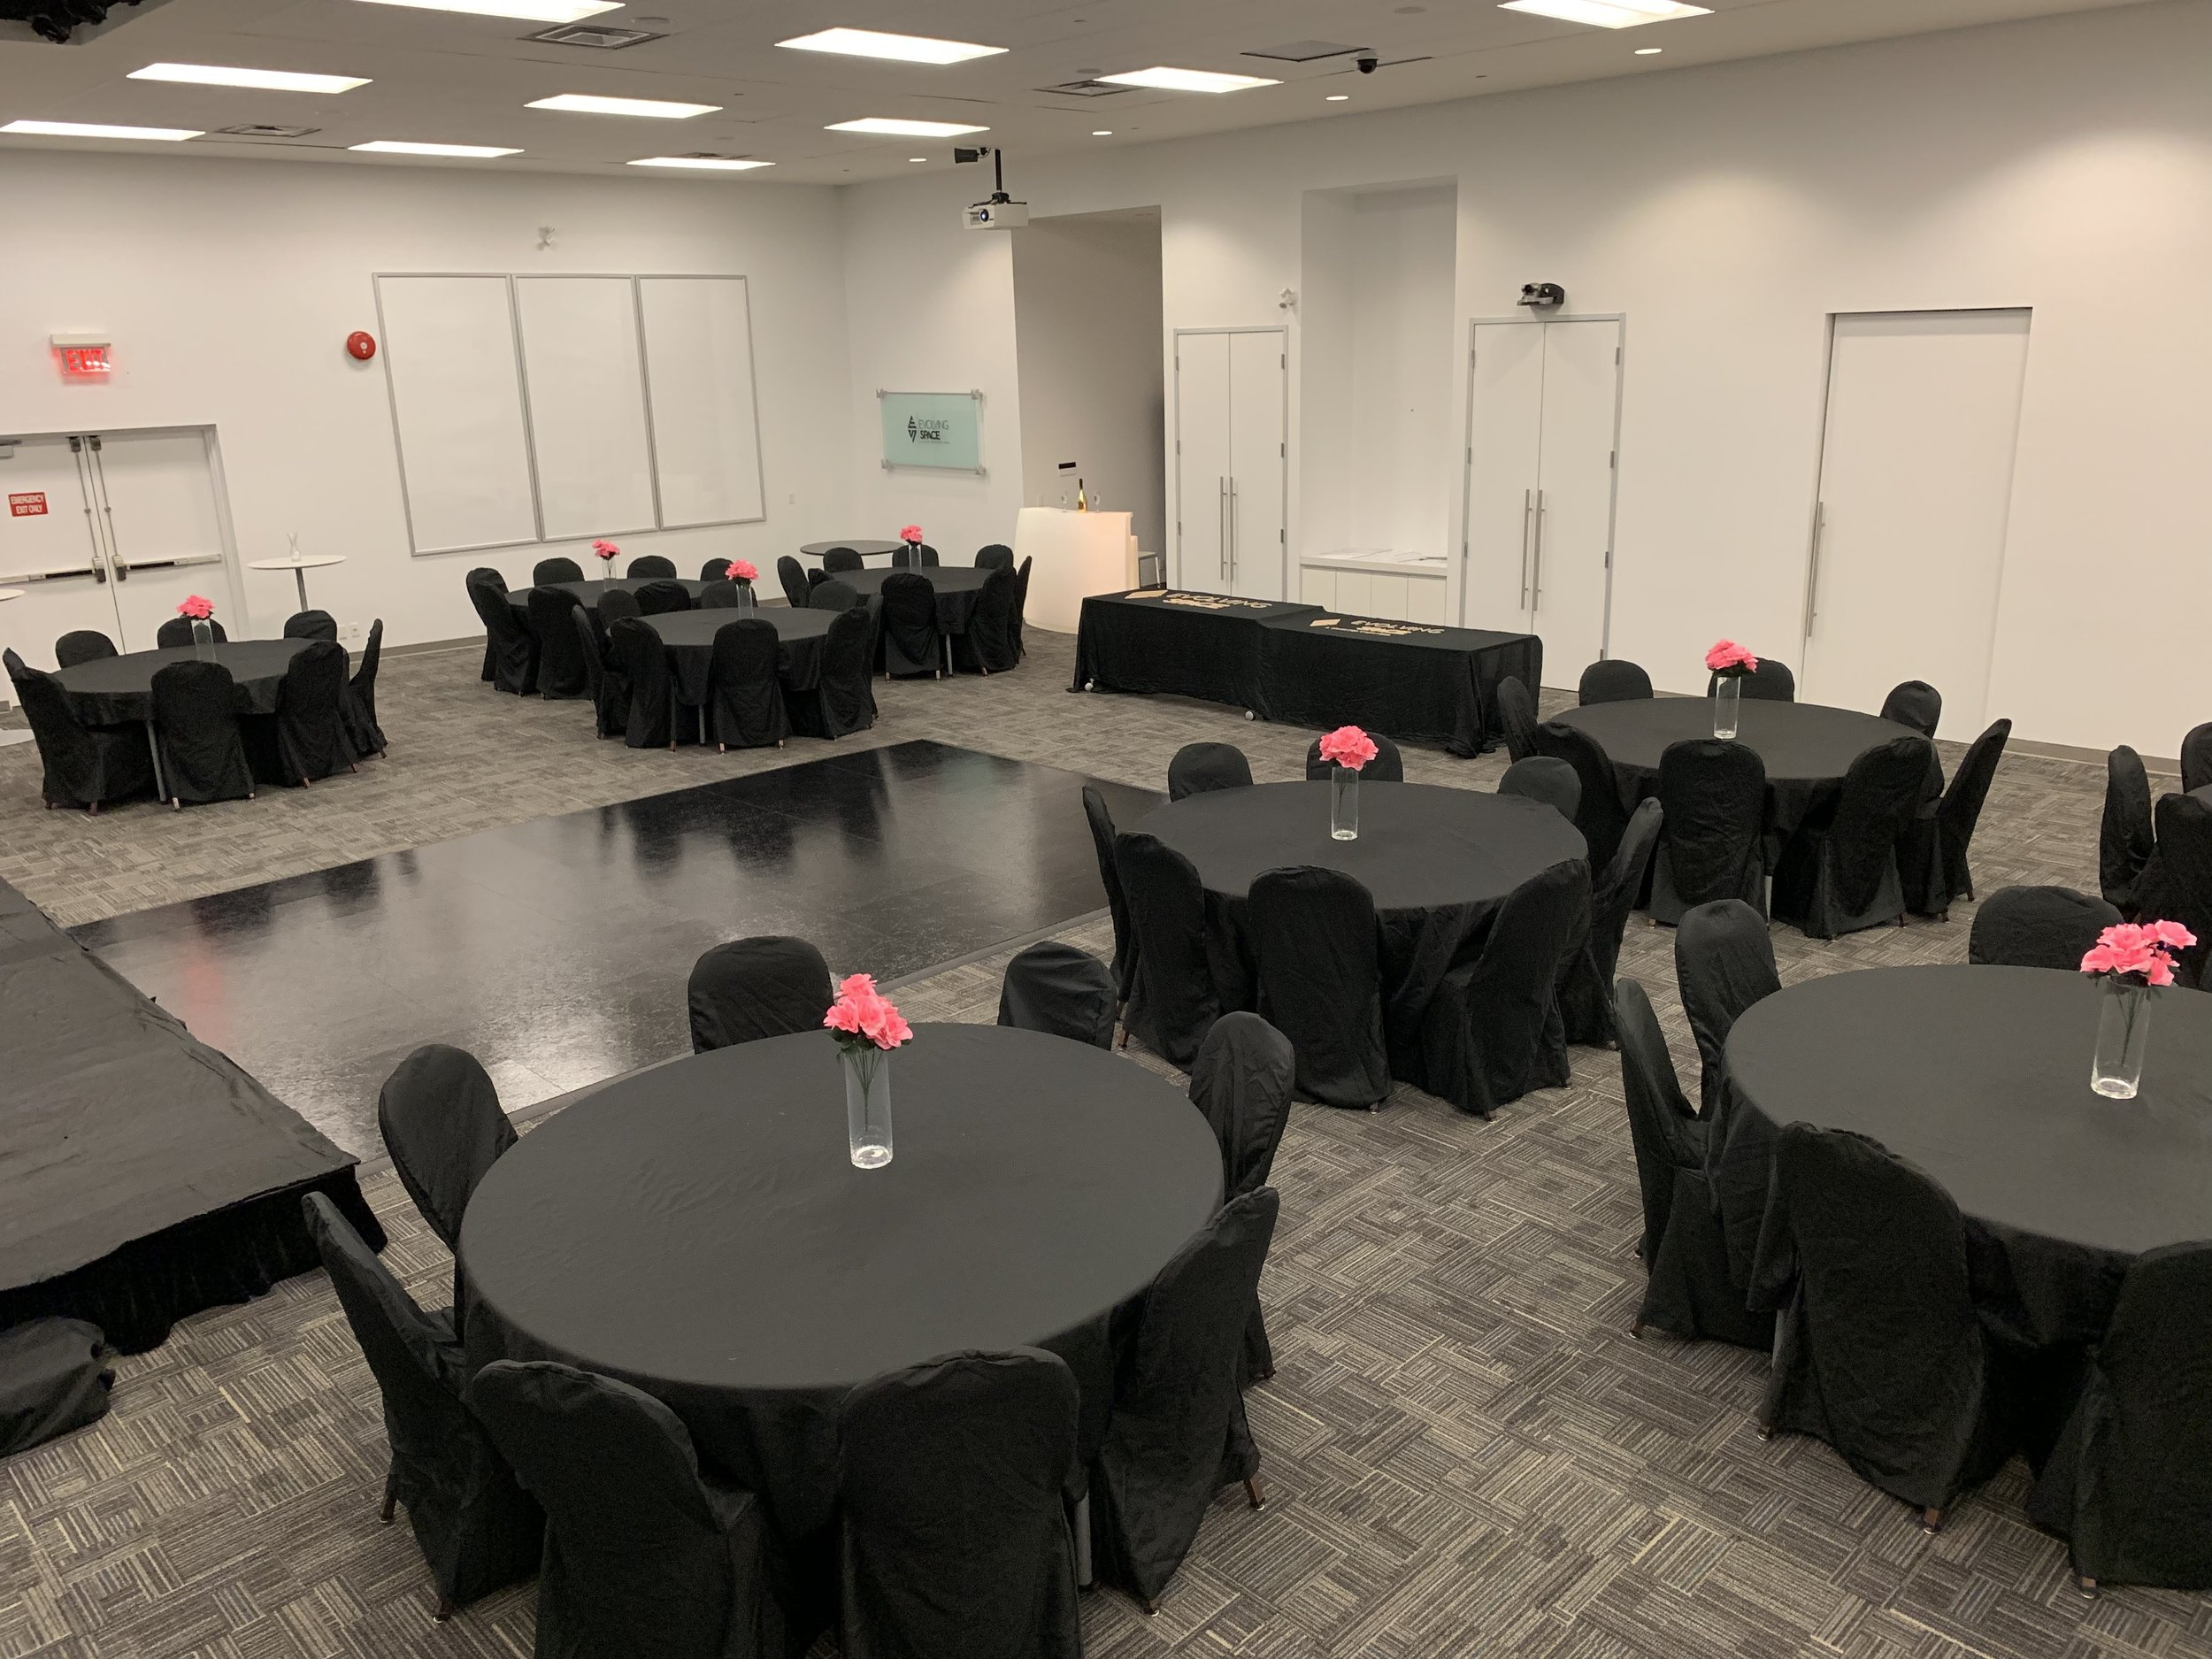 Madison Springs Conference Center - Celebrate your events with us! Our event room has capacity for 100 guests and has a standing capacity of 150 guests. This room is perfect for bridal showers, baby showers, birthdays, religious events, and more.